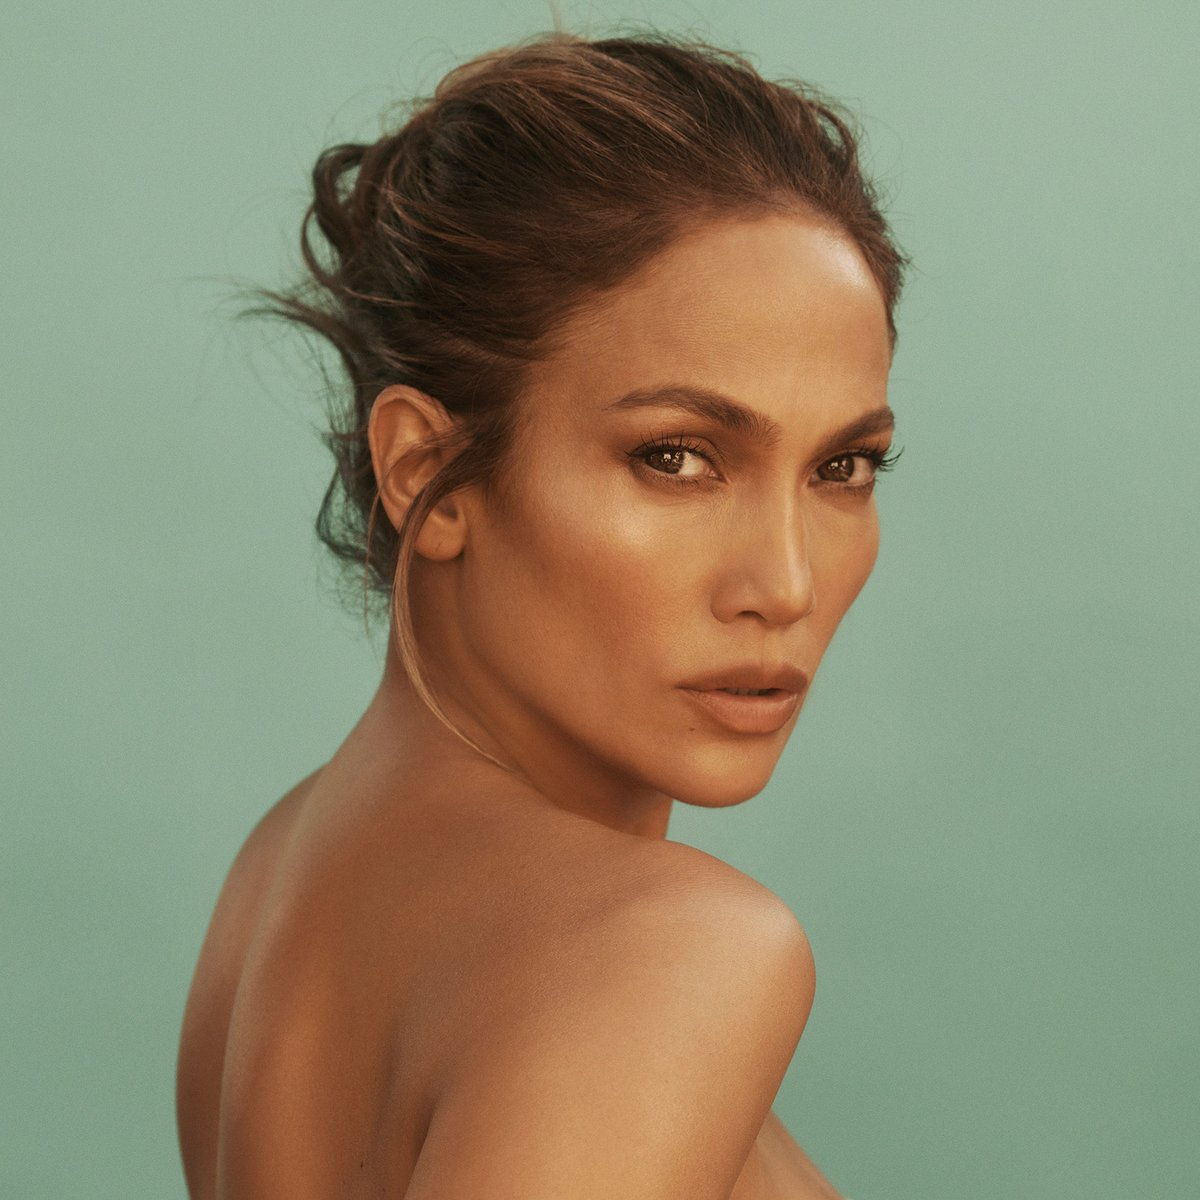 Want to know the secret to JLo's signature glow? ✨ Tune in to our Instagram Live today at 10am PT for an episode of Beauty Chat Room with @jlo to learn all about her brand-new @jlobeauty skincare line!